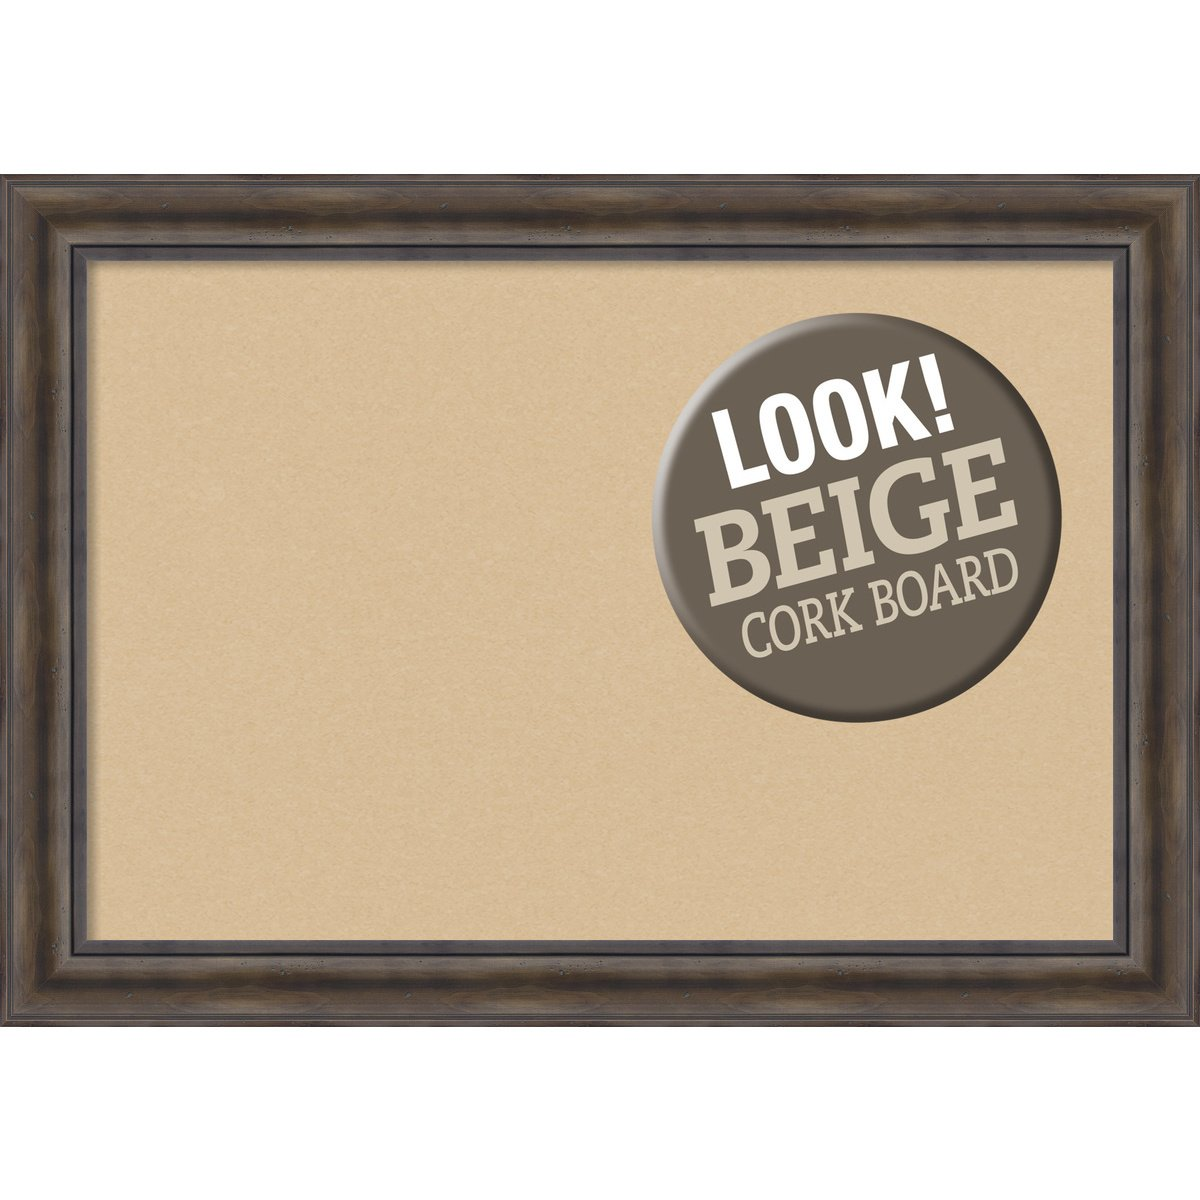 Amanti Art Framed Beige Cork Board Rustic Pine: Outer Size 42 x 30'', Extra Large